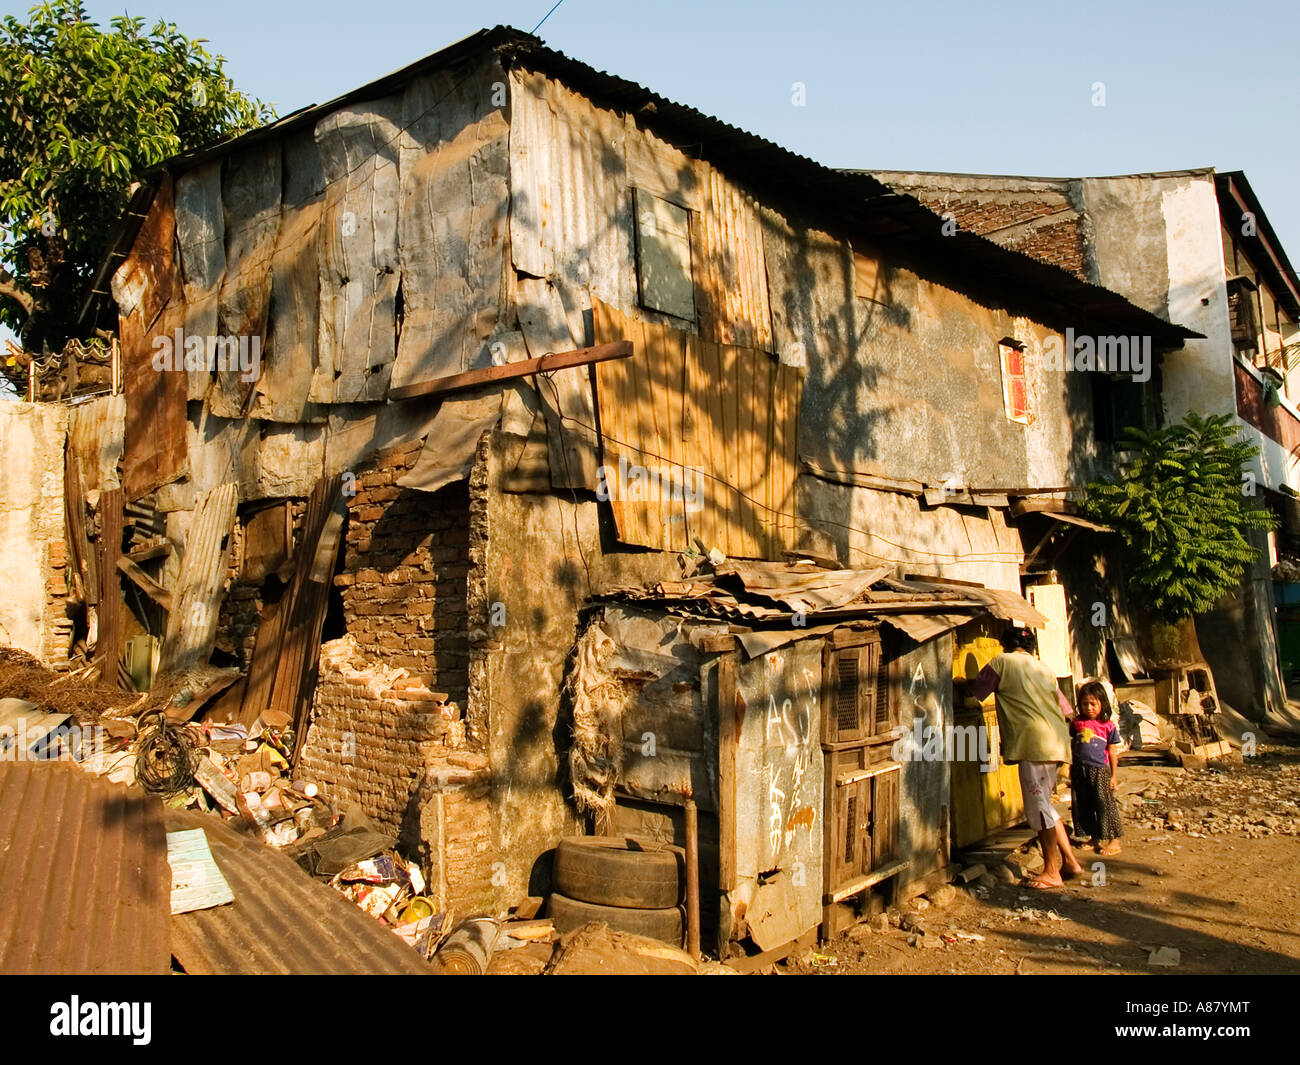 Mother and child enter their ramshackle shack like house in slum area,Surabaya,Java,Indonesia - Stock Image